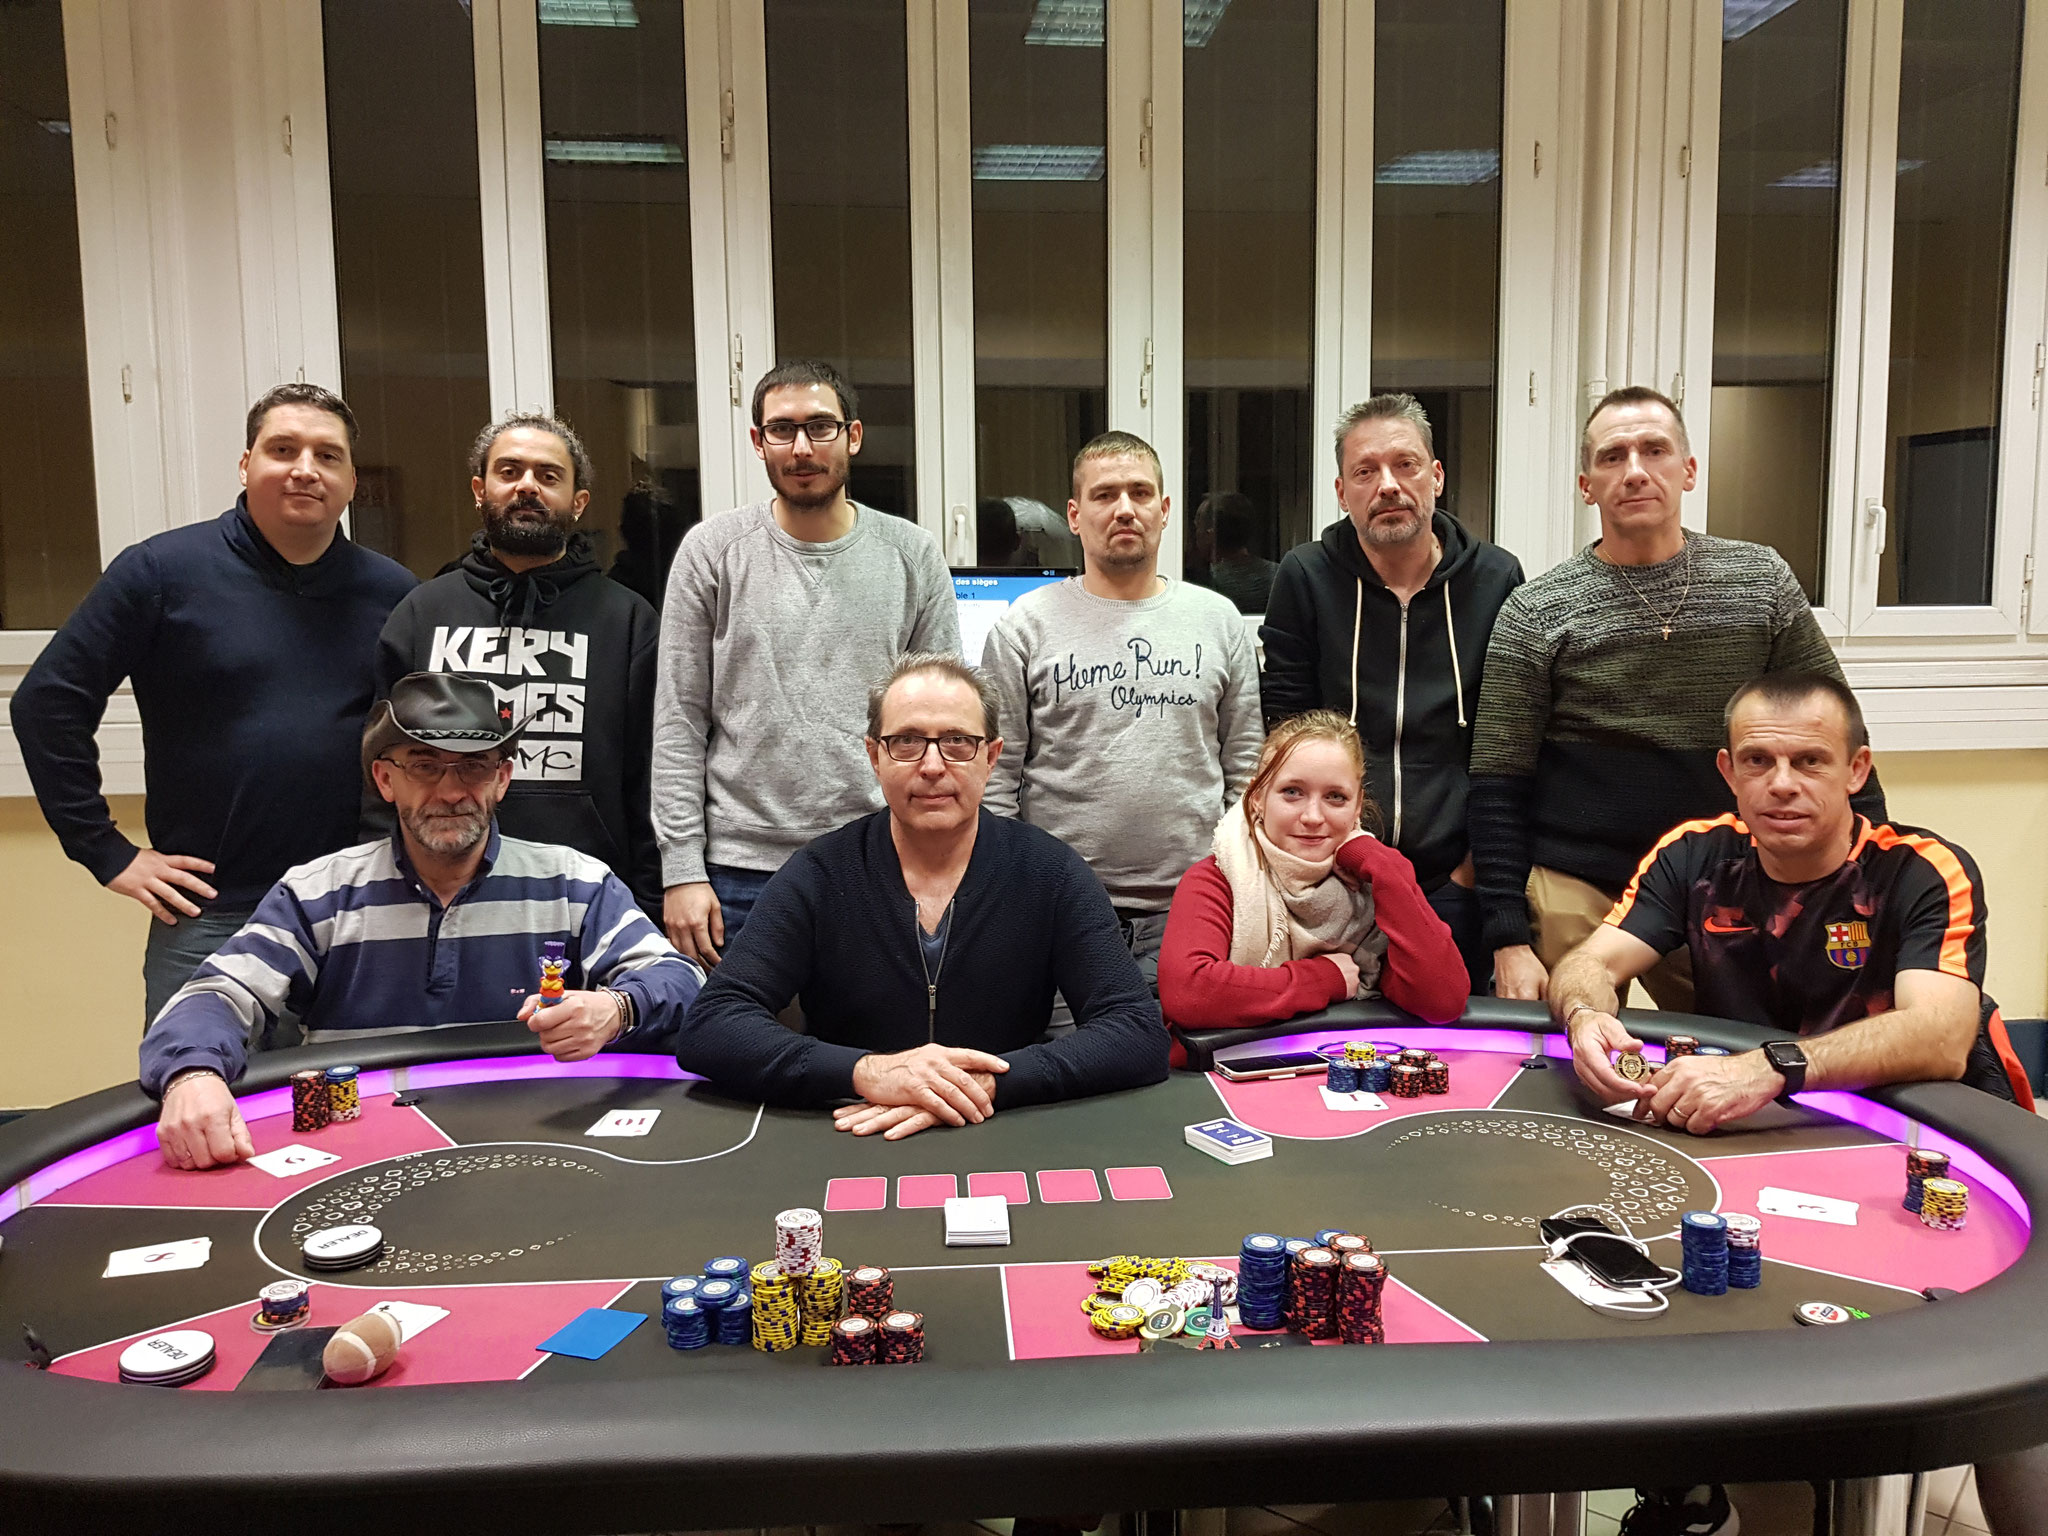 MTT04 16/11/2018 --- Winner ALEX --- Runner-Up TORTU --- Podium LE DIRECTEUR